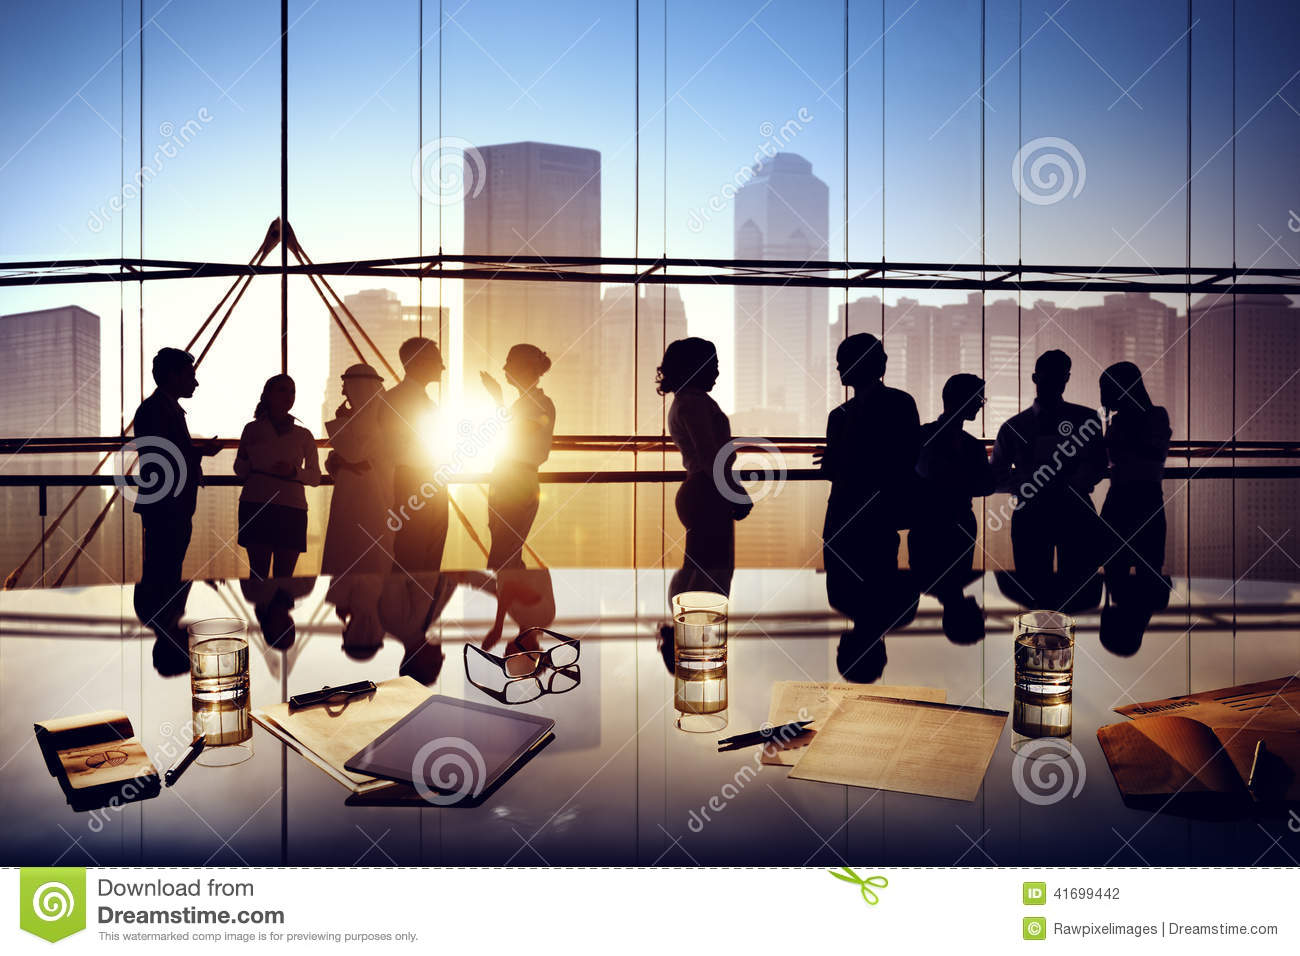 Silhouettes Of Business People Brainstorming Inside The